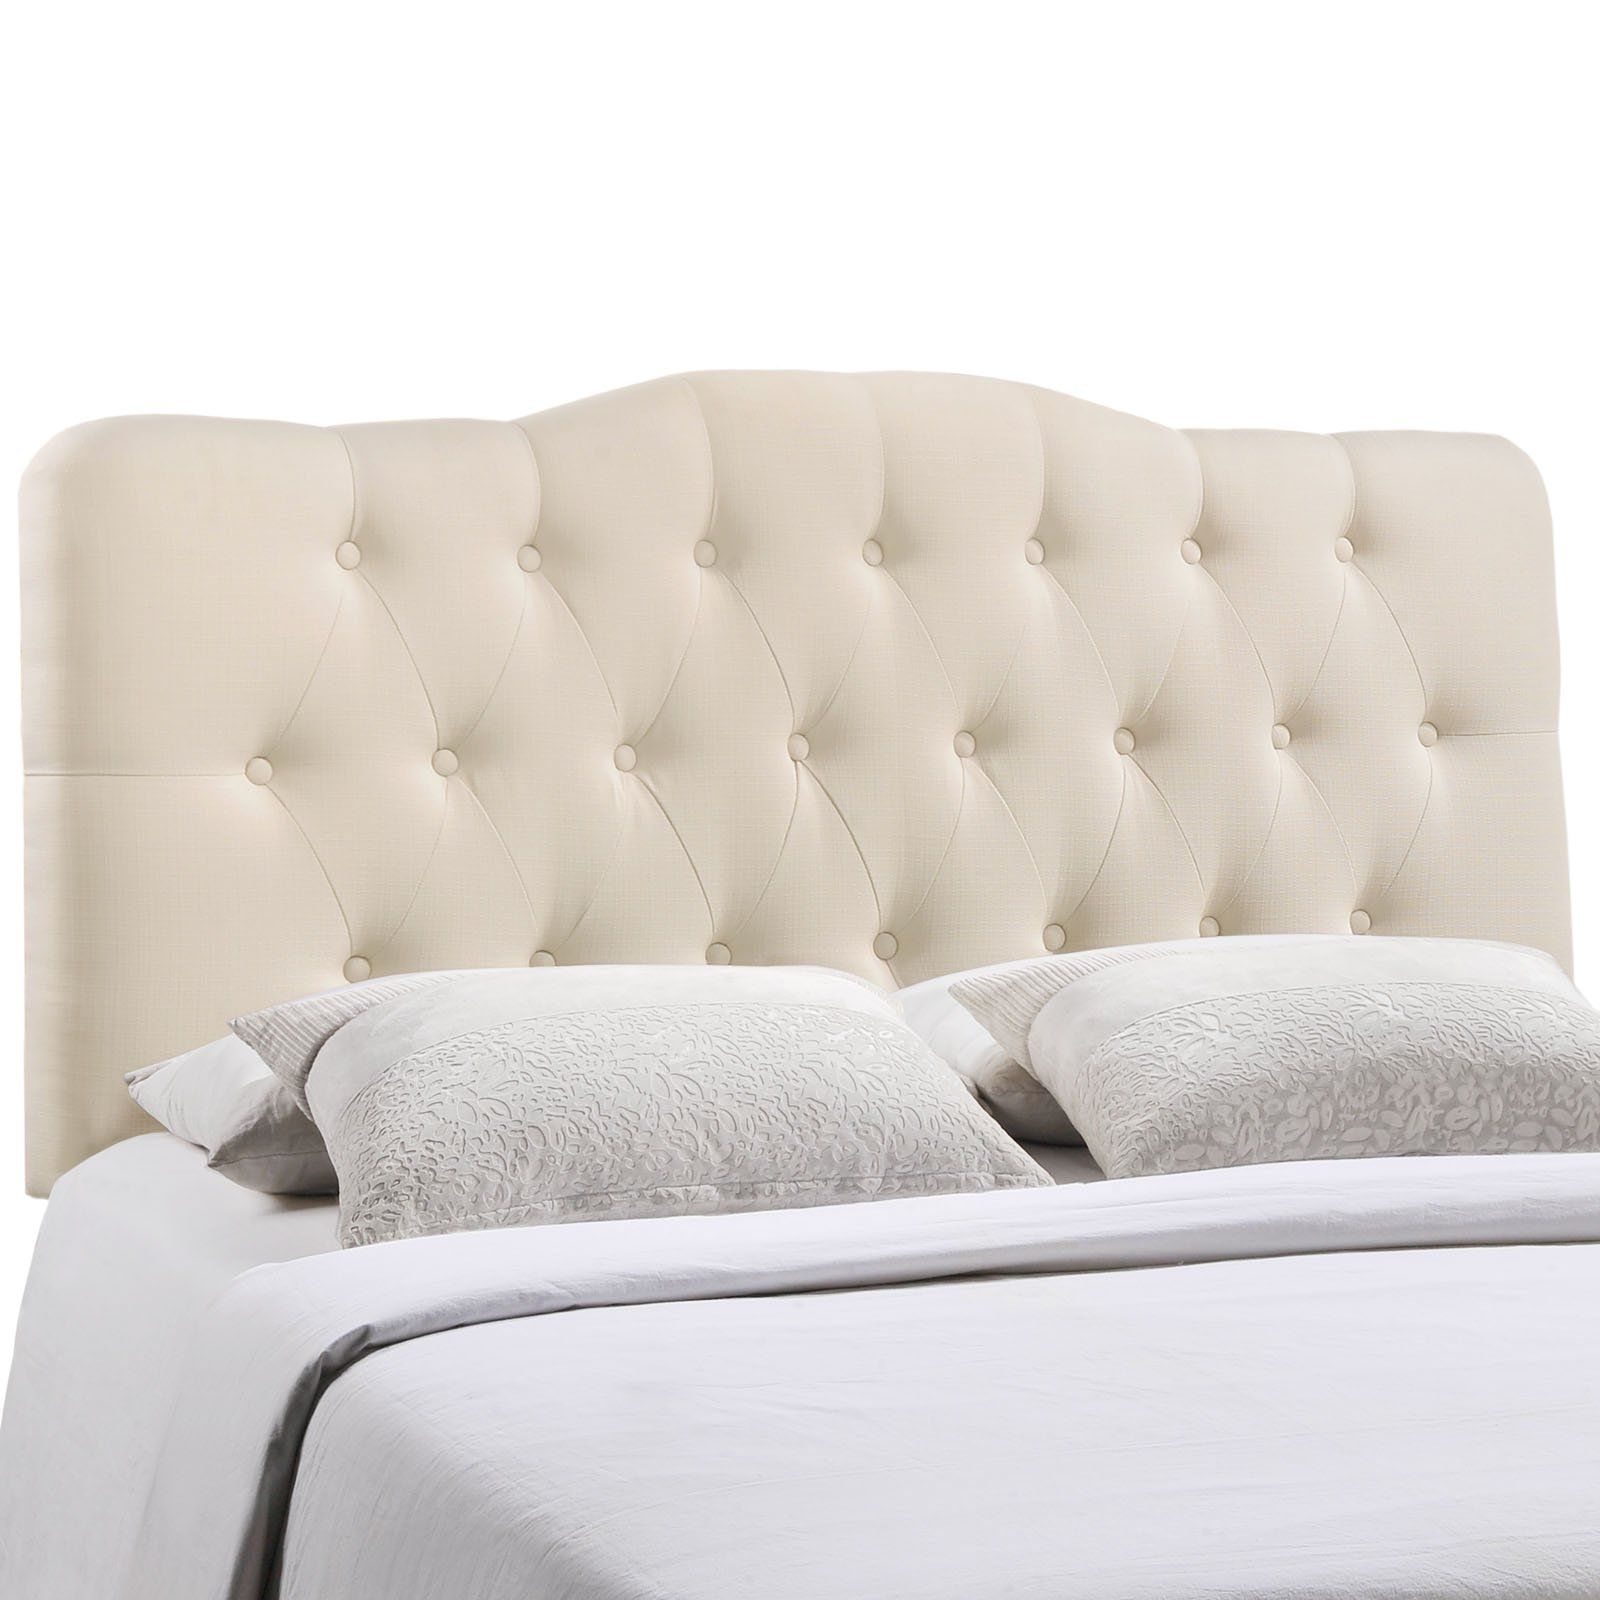 Modway Annabel Tufted Button Linen Fabric Upholstered Full Headboard in Ivory by Modway